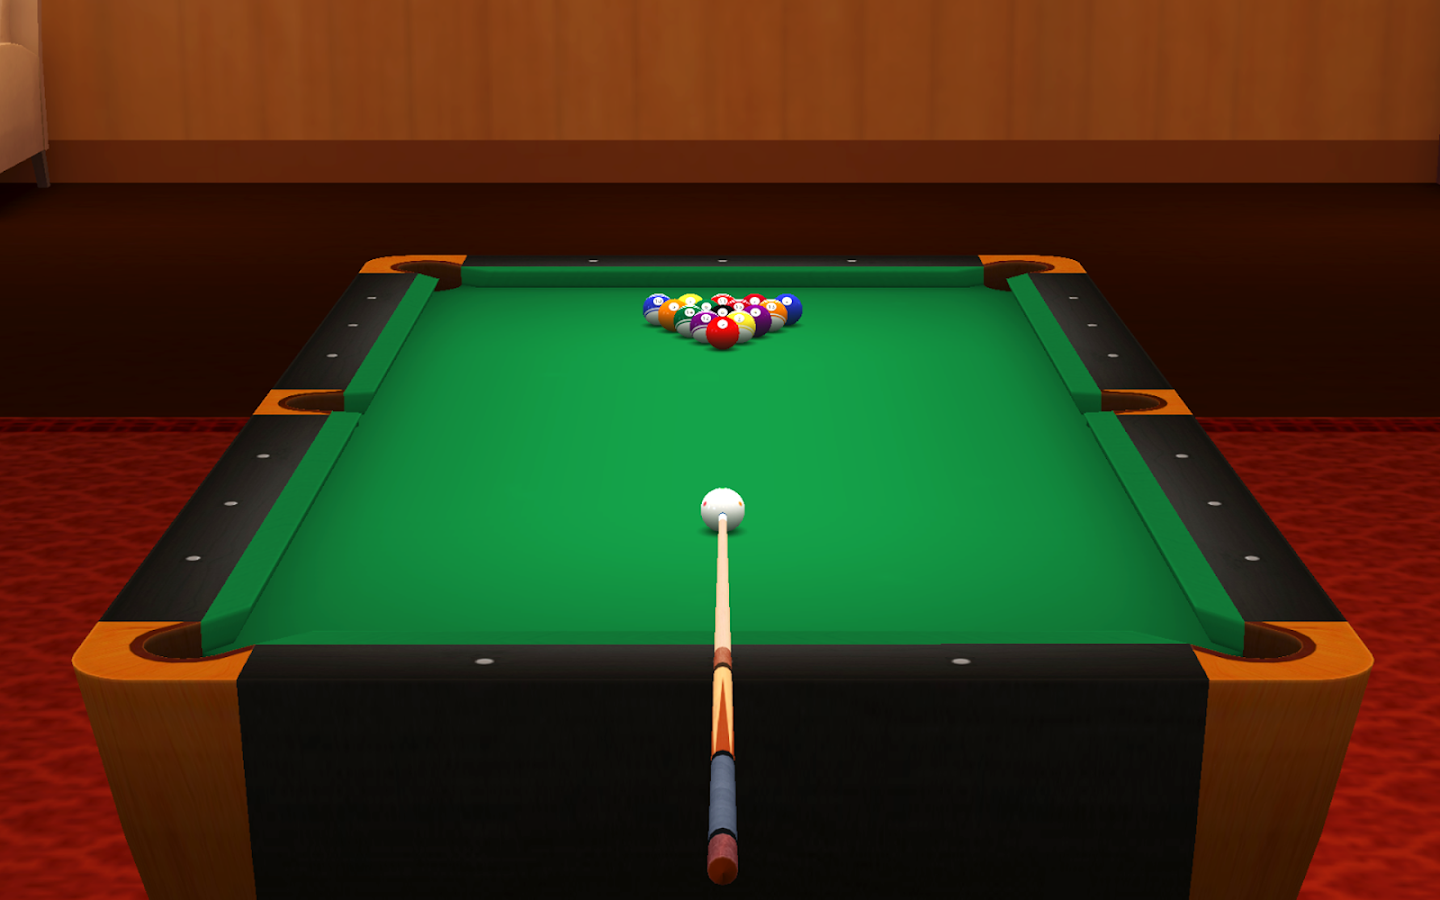 Pool Break Pro 3D Billiards Screenshot 10